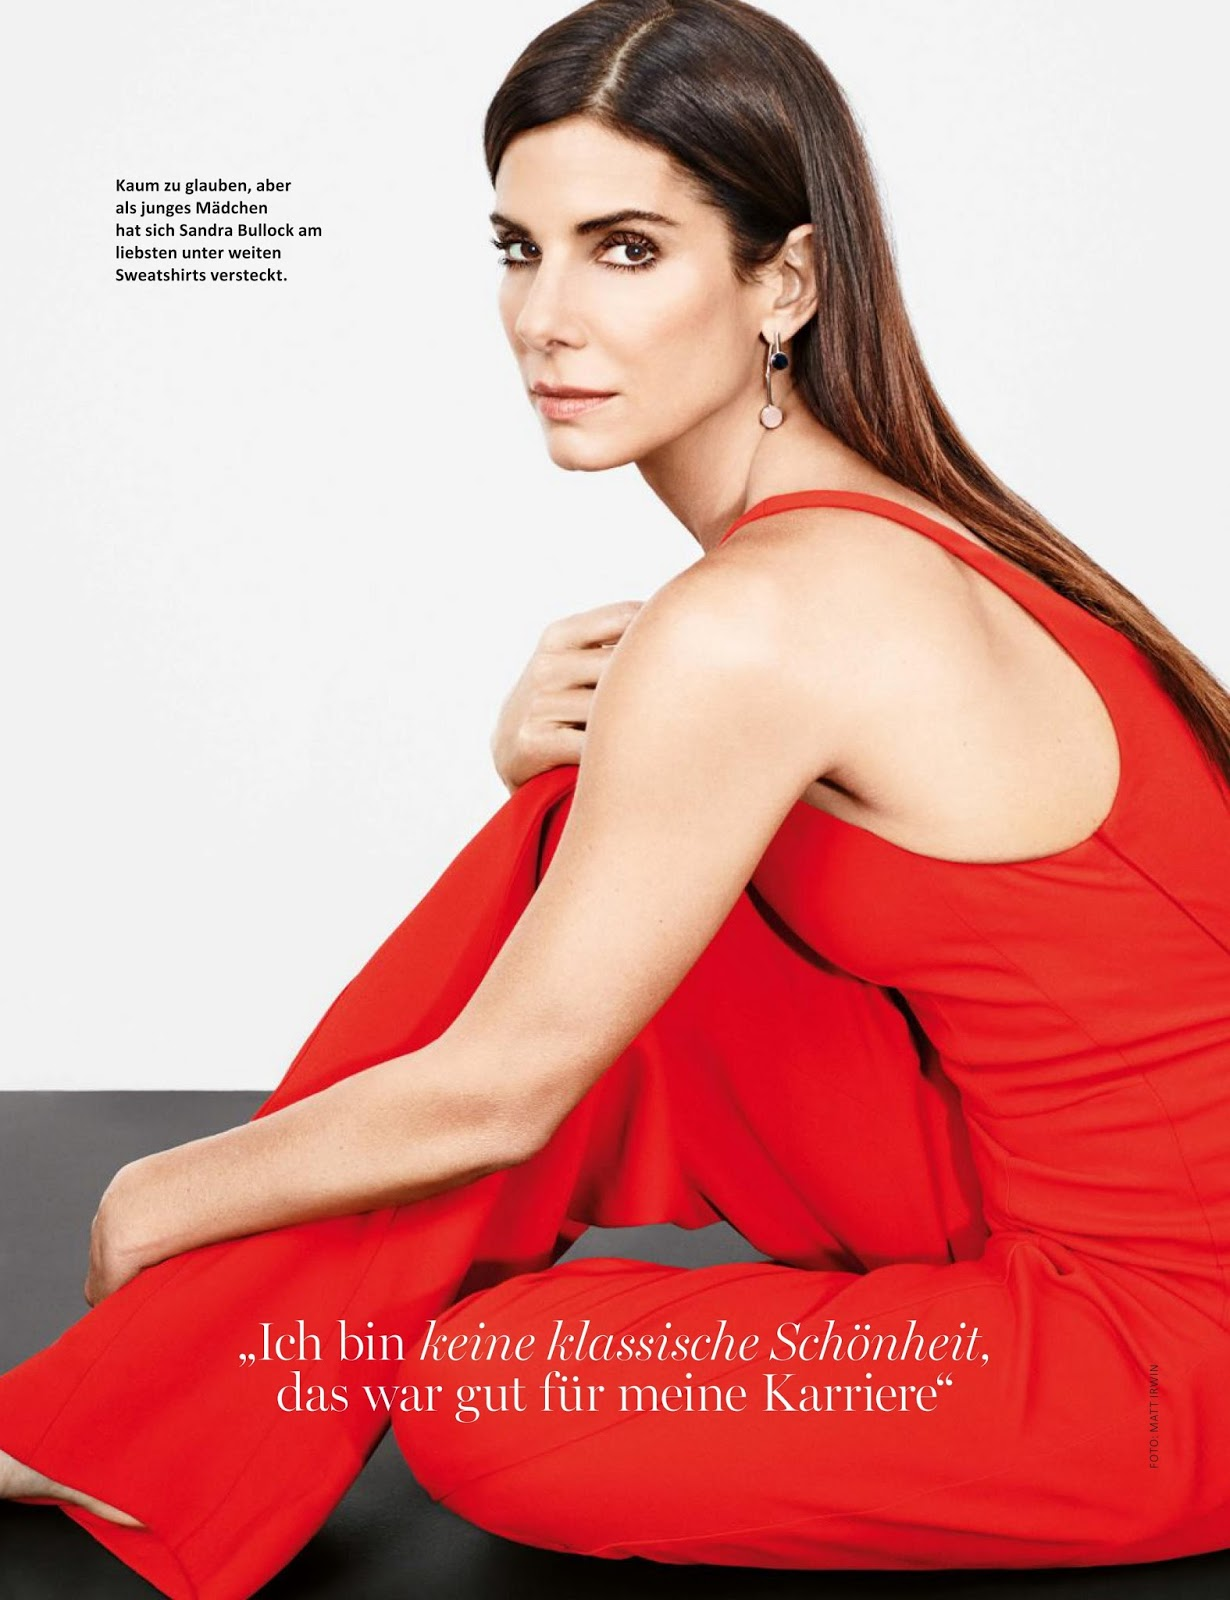 Actress Sandra Bullock Myself Magazine on facebook academy award